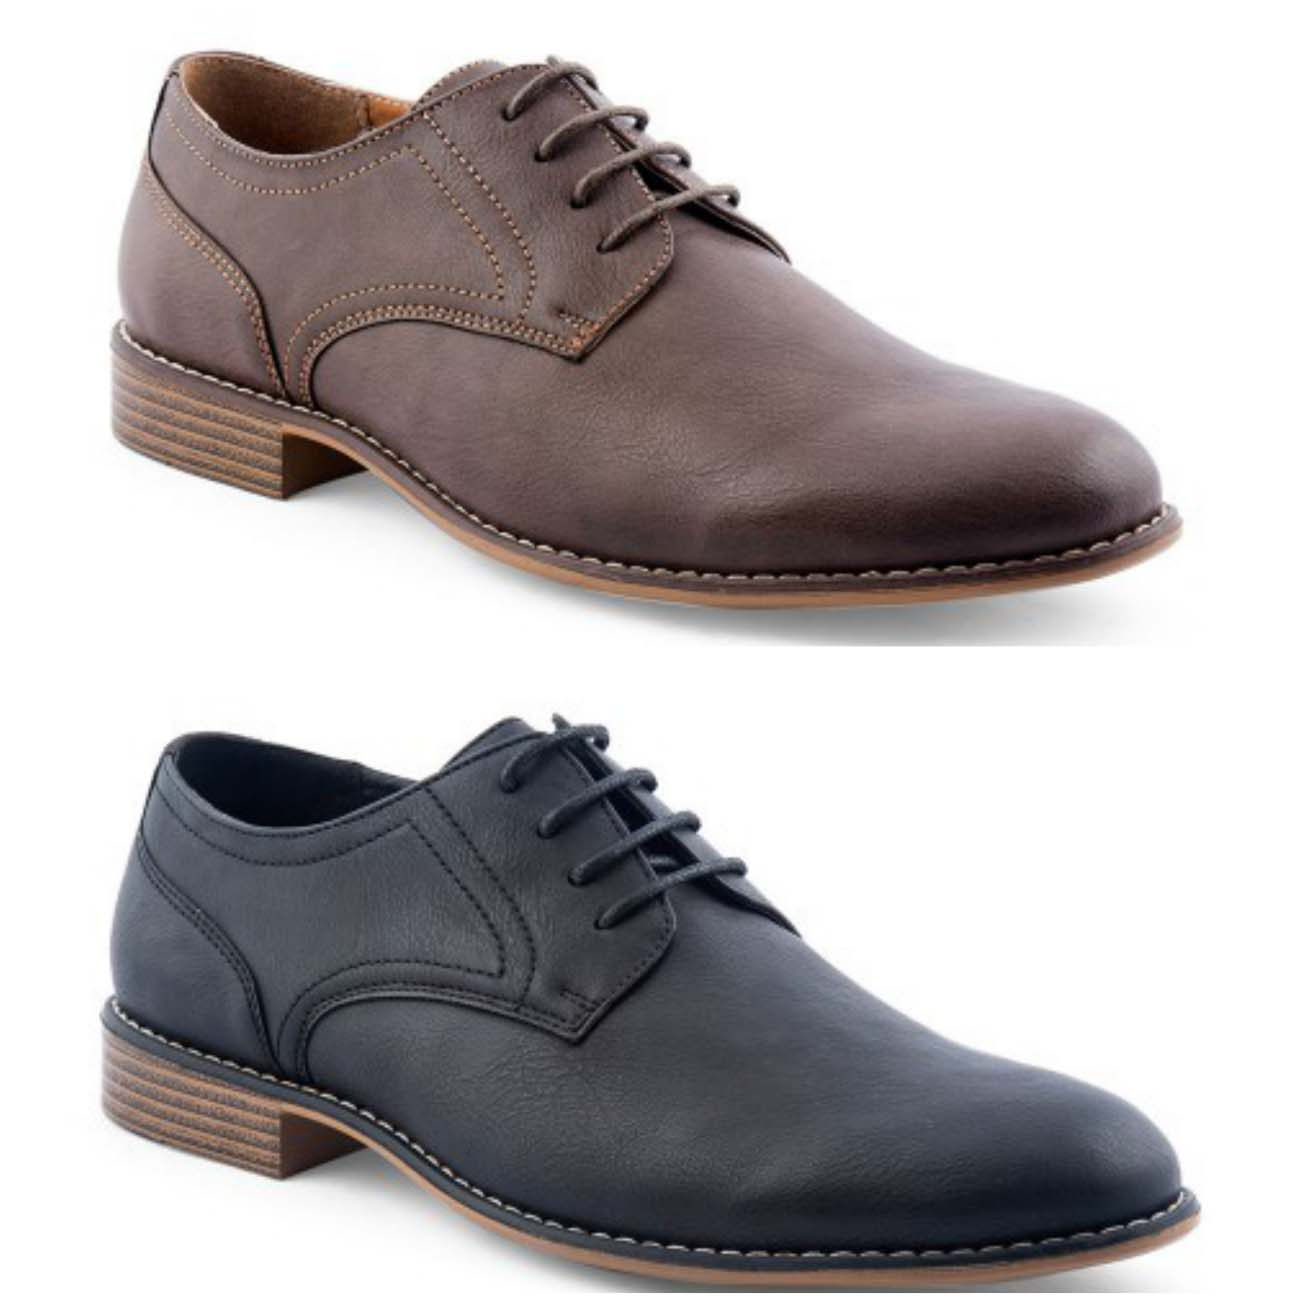 Best servis Shoes For Men For winter 2016